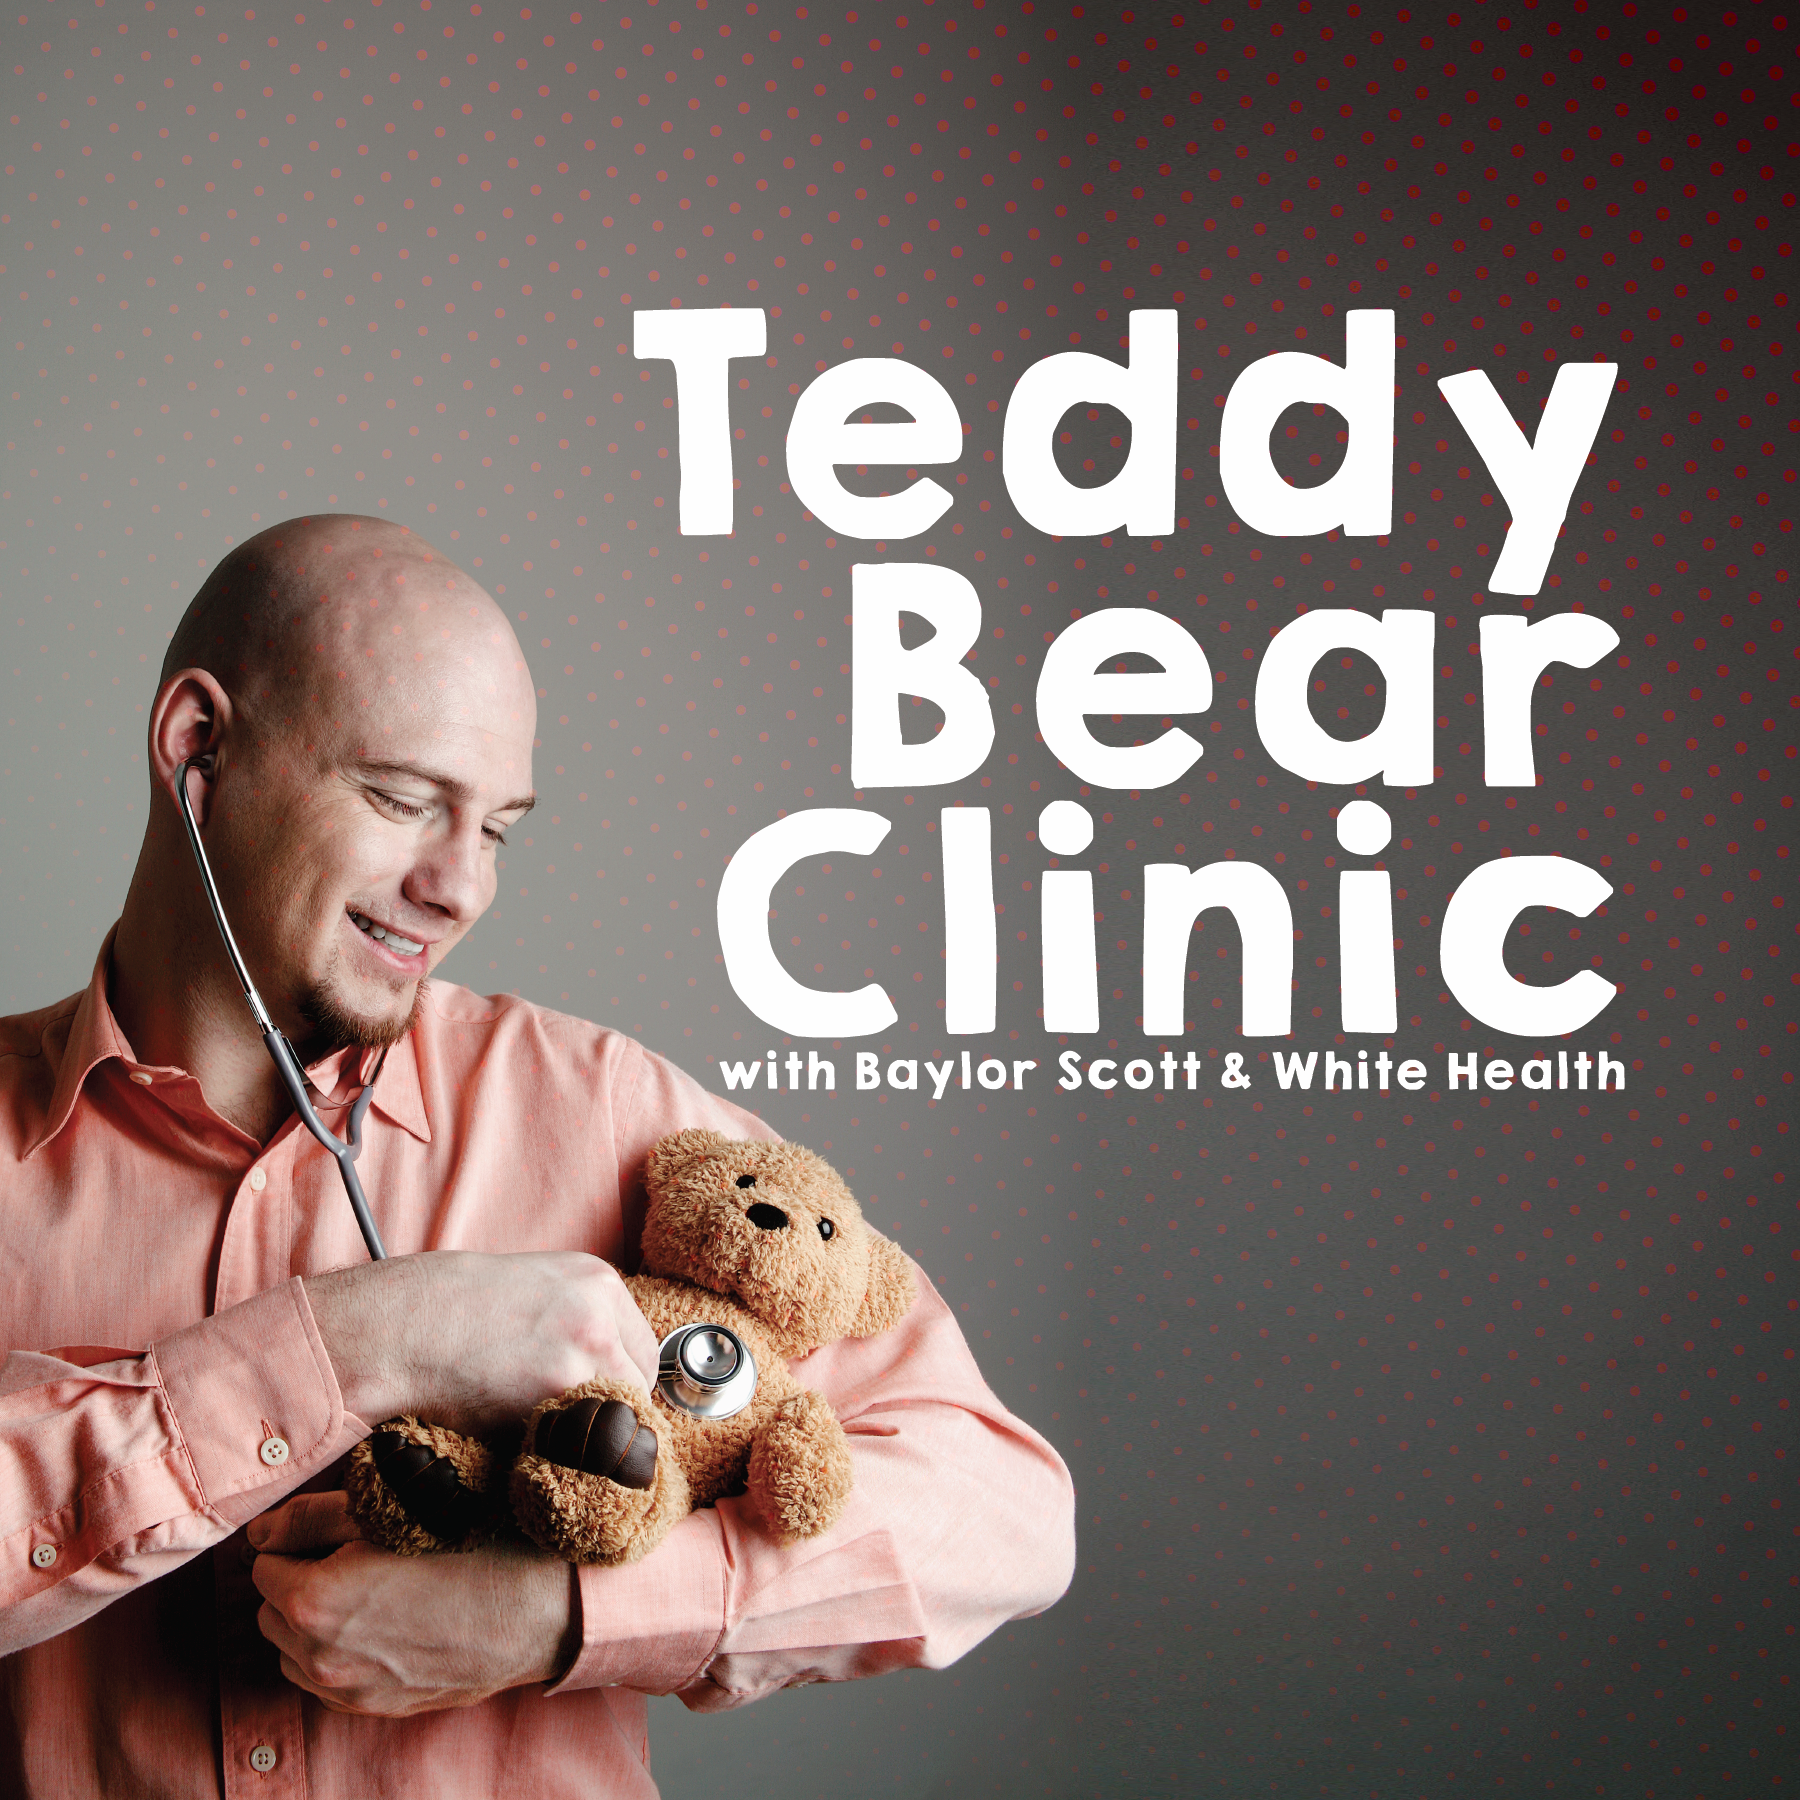 Teddy Bear Clinic Sponsored by Baylor Scott & White Hillcrest Pediatric Clinic